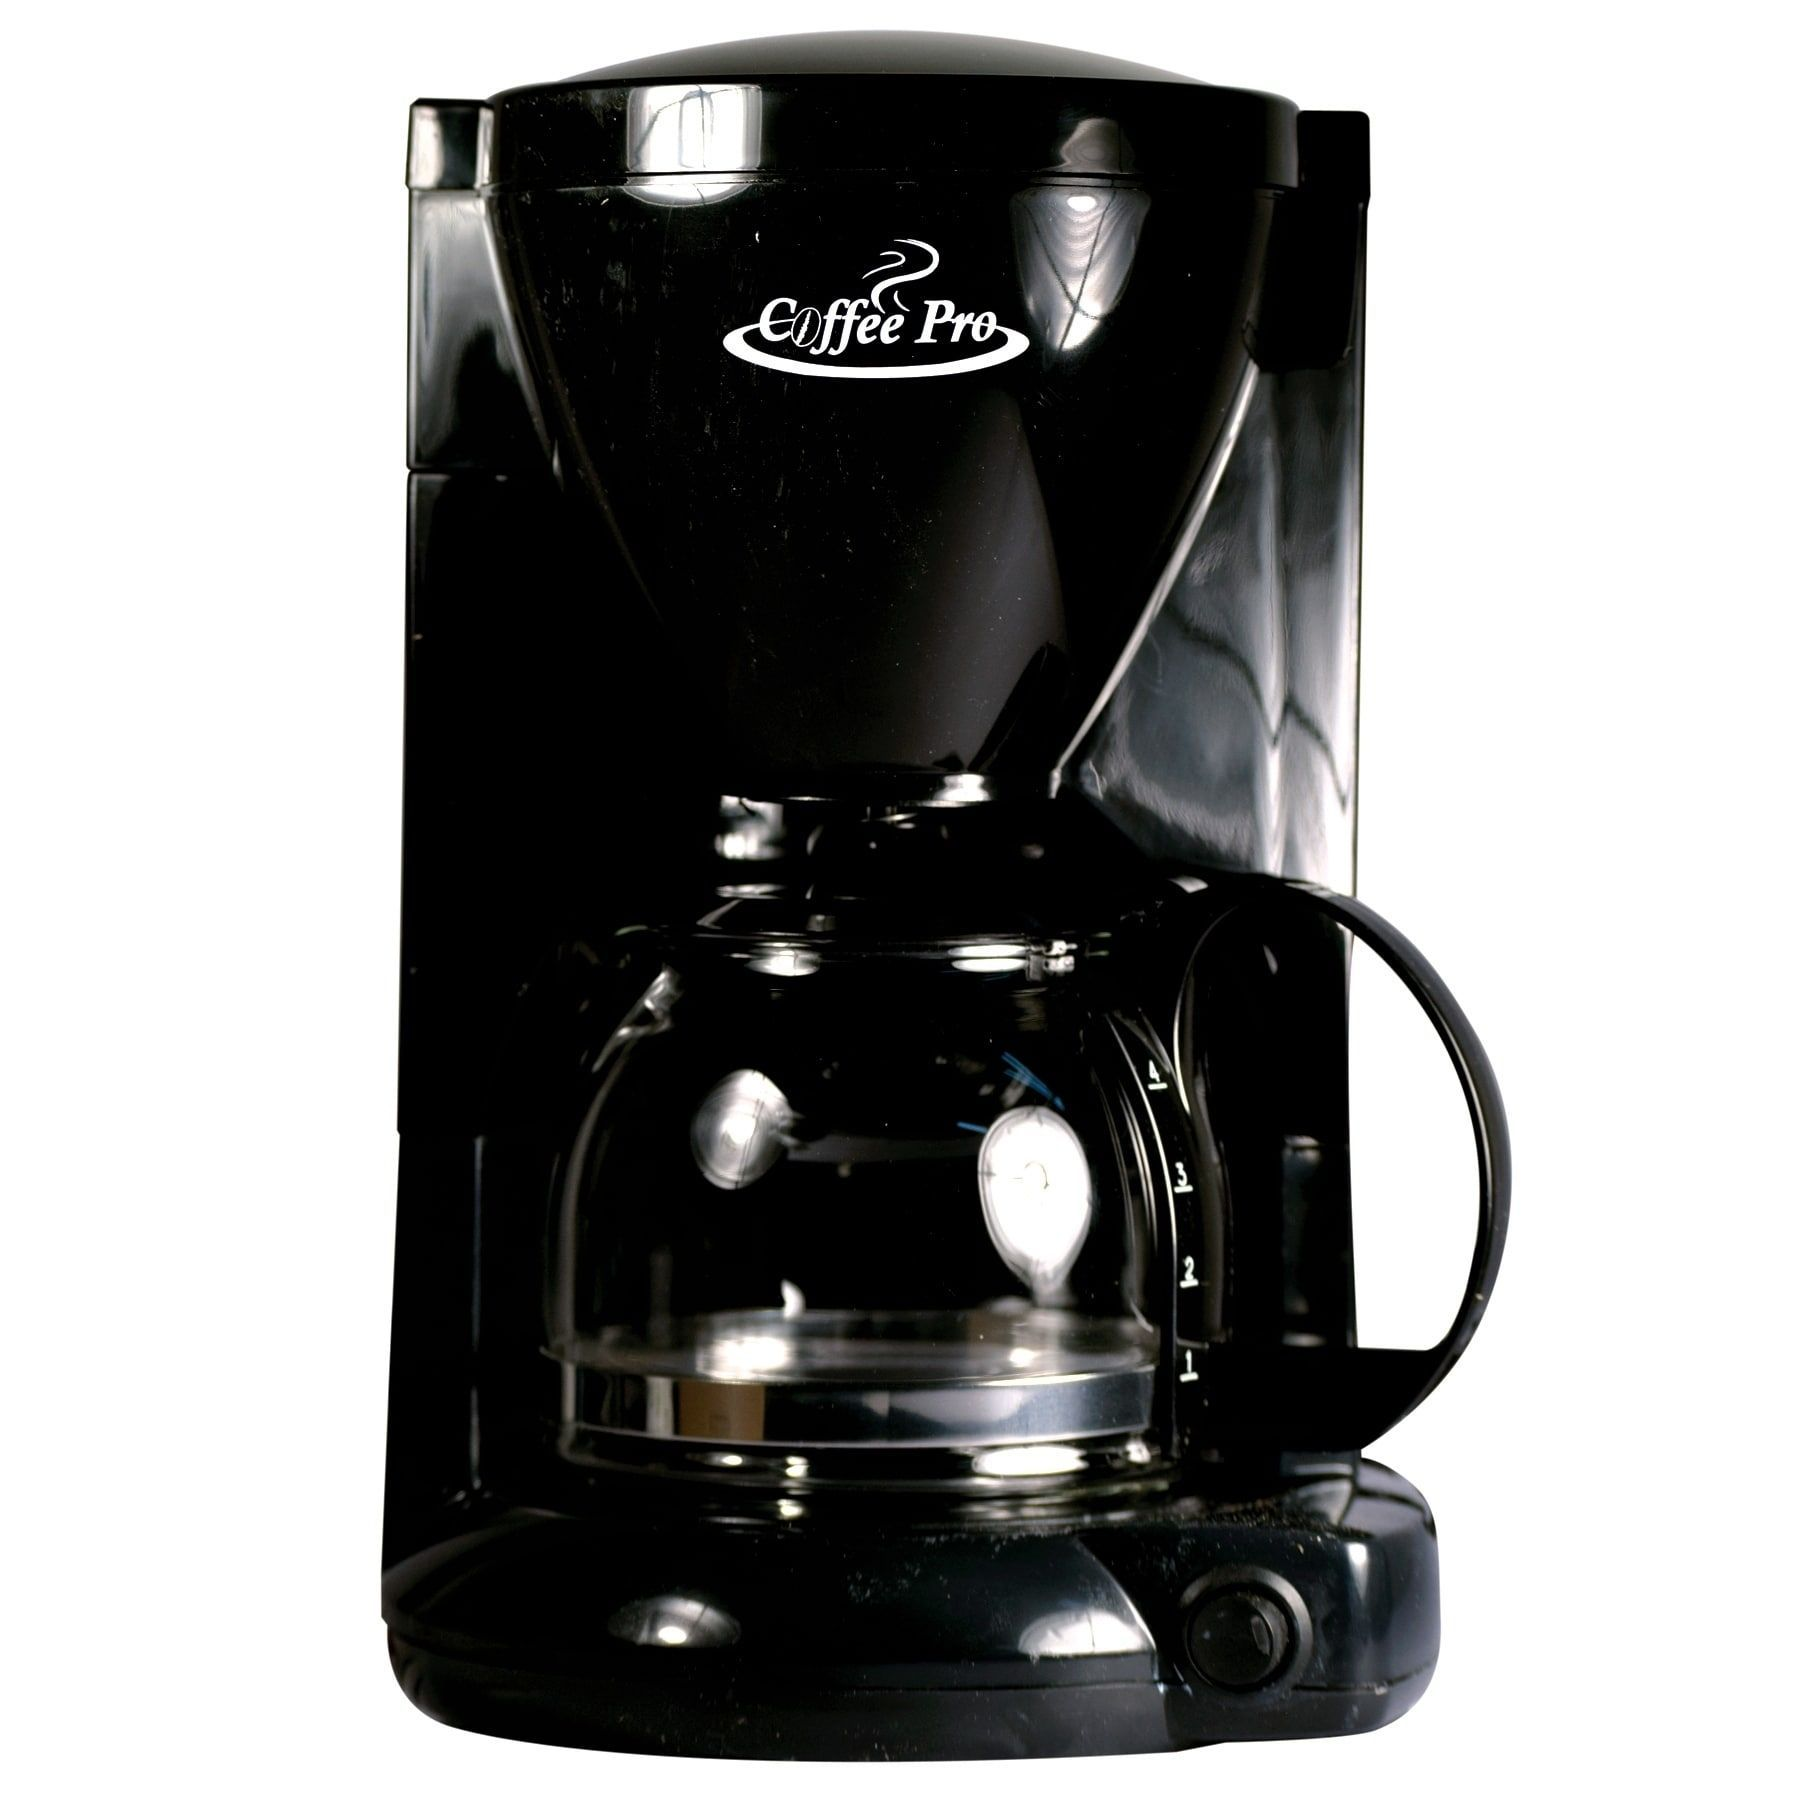 Coffee Pro Coffee Maker Black 4 Cup Plastic 4 Cup Coffee Maker Electric Coffee Maker Coffee Maker